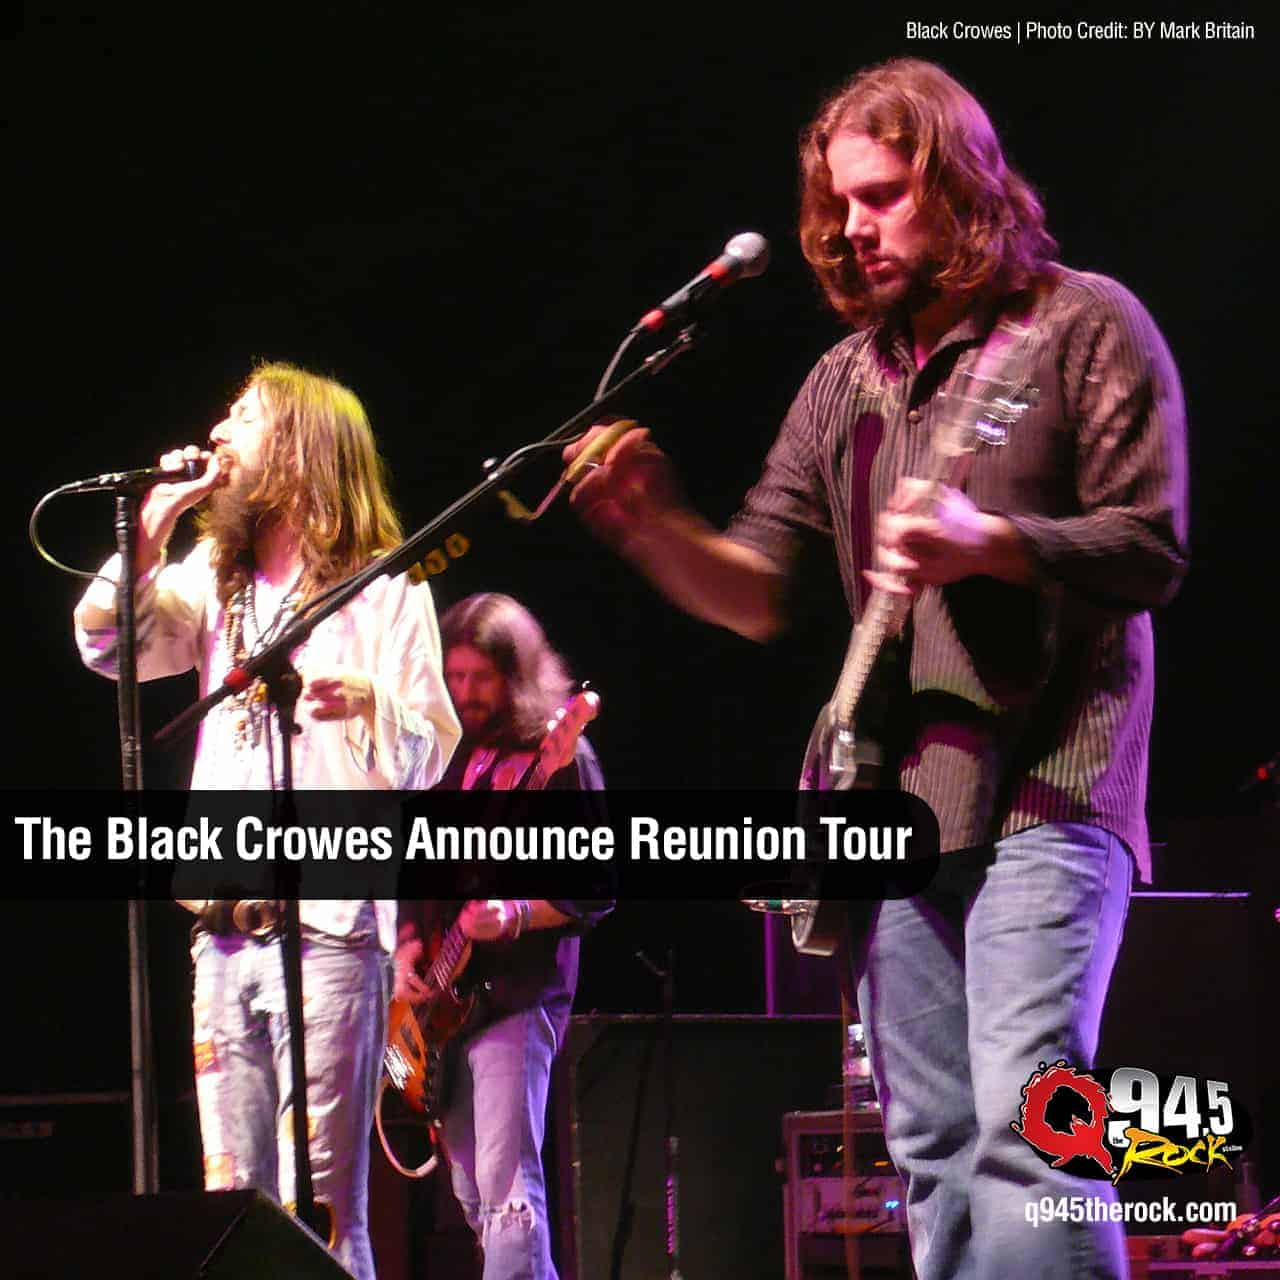 The Black Crowes Announce Reunion Tour